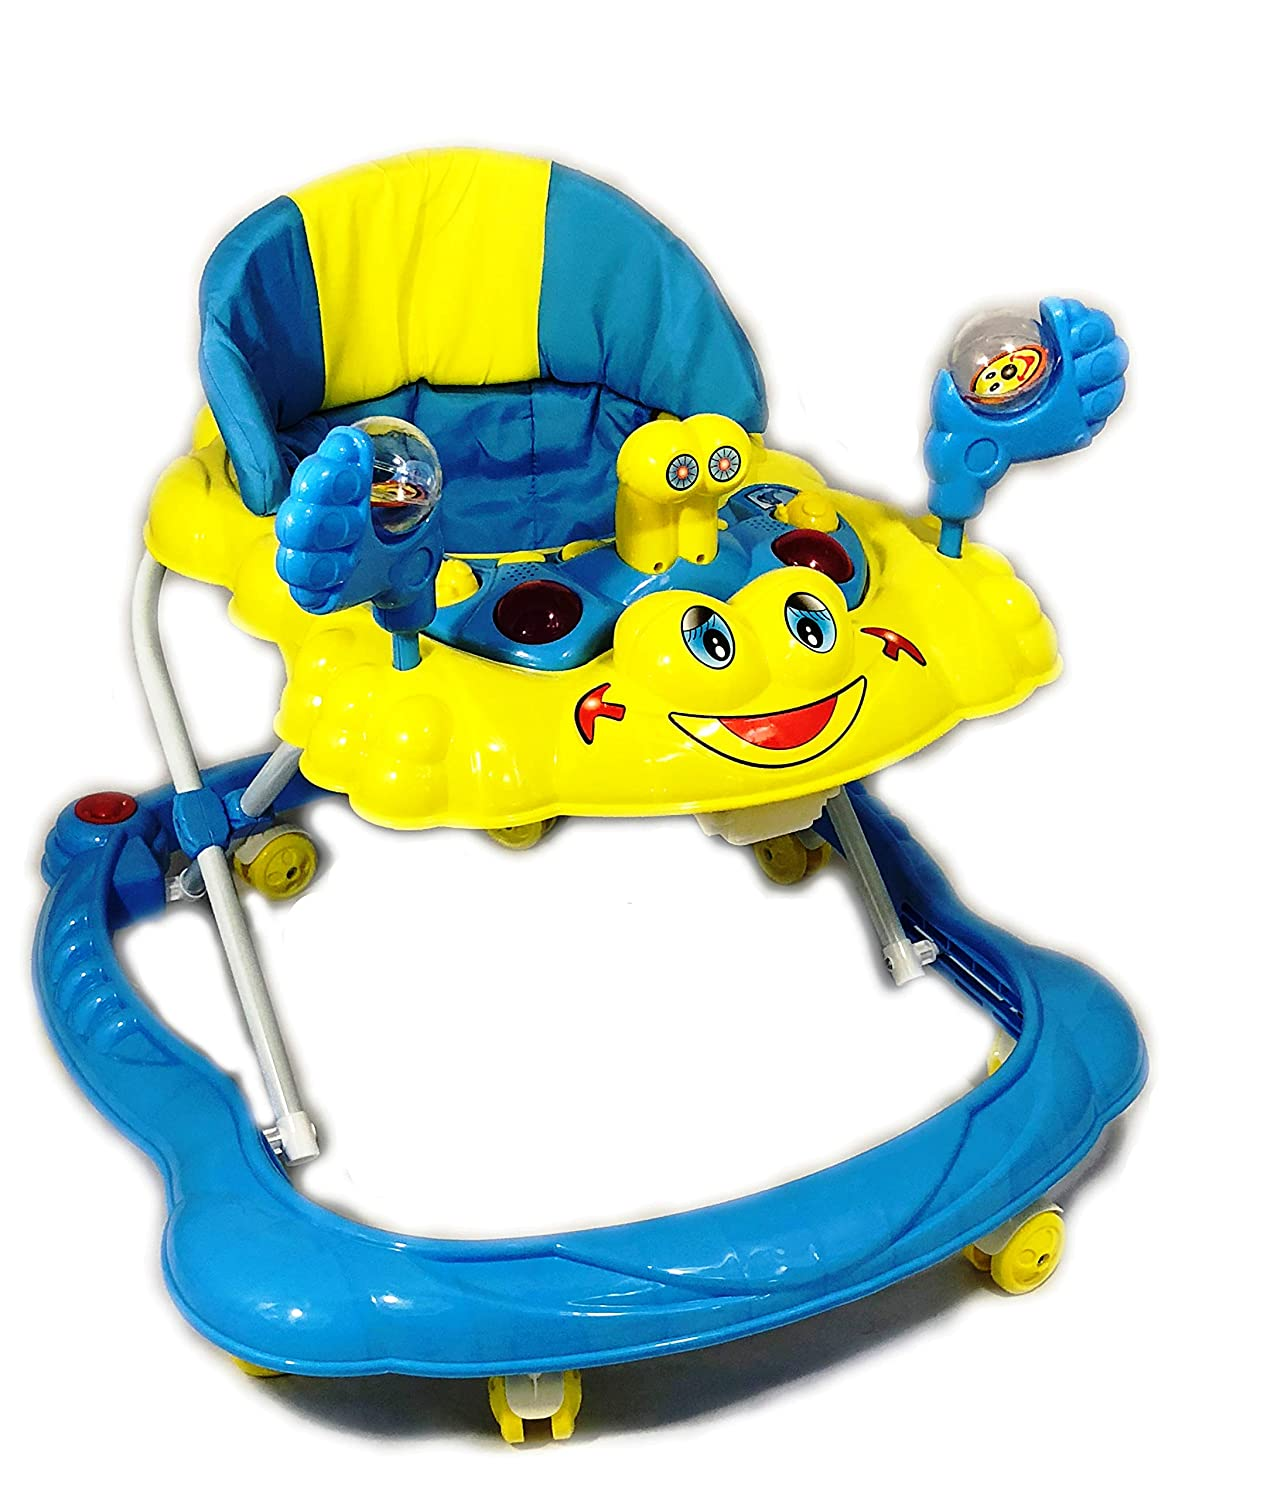 New Baby Walker First Step Push Along Bouncer Activity Music Ride On Car Melody